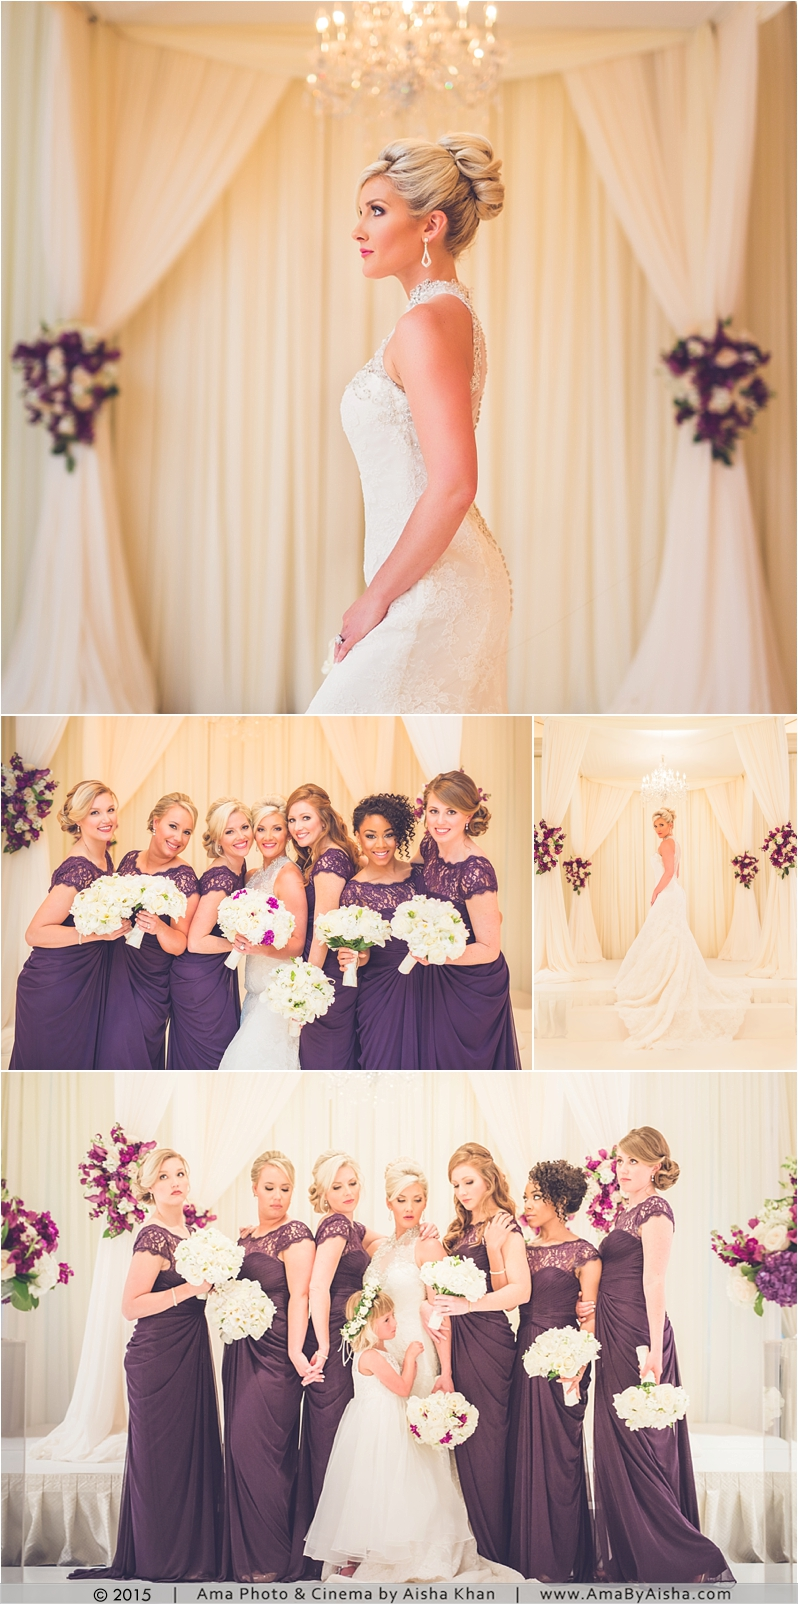 ©2015 | www.AmaByAisha.com | Bride and bridesmaids portraits